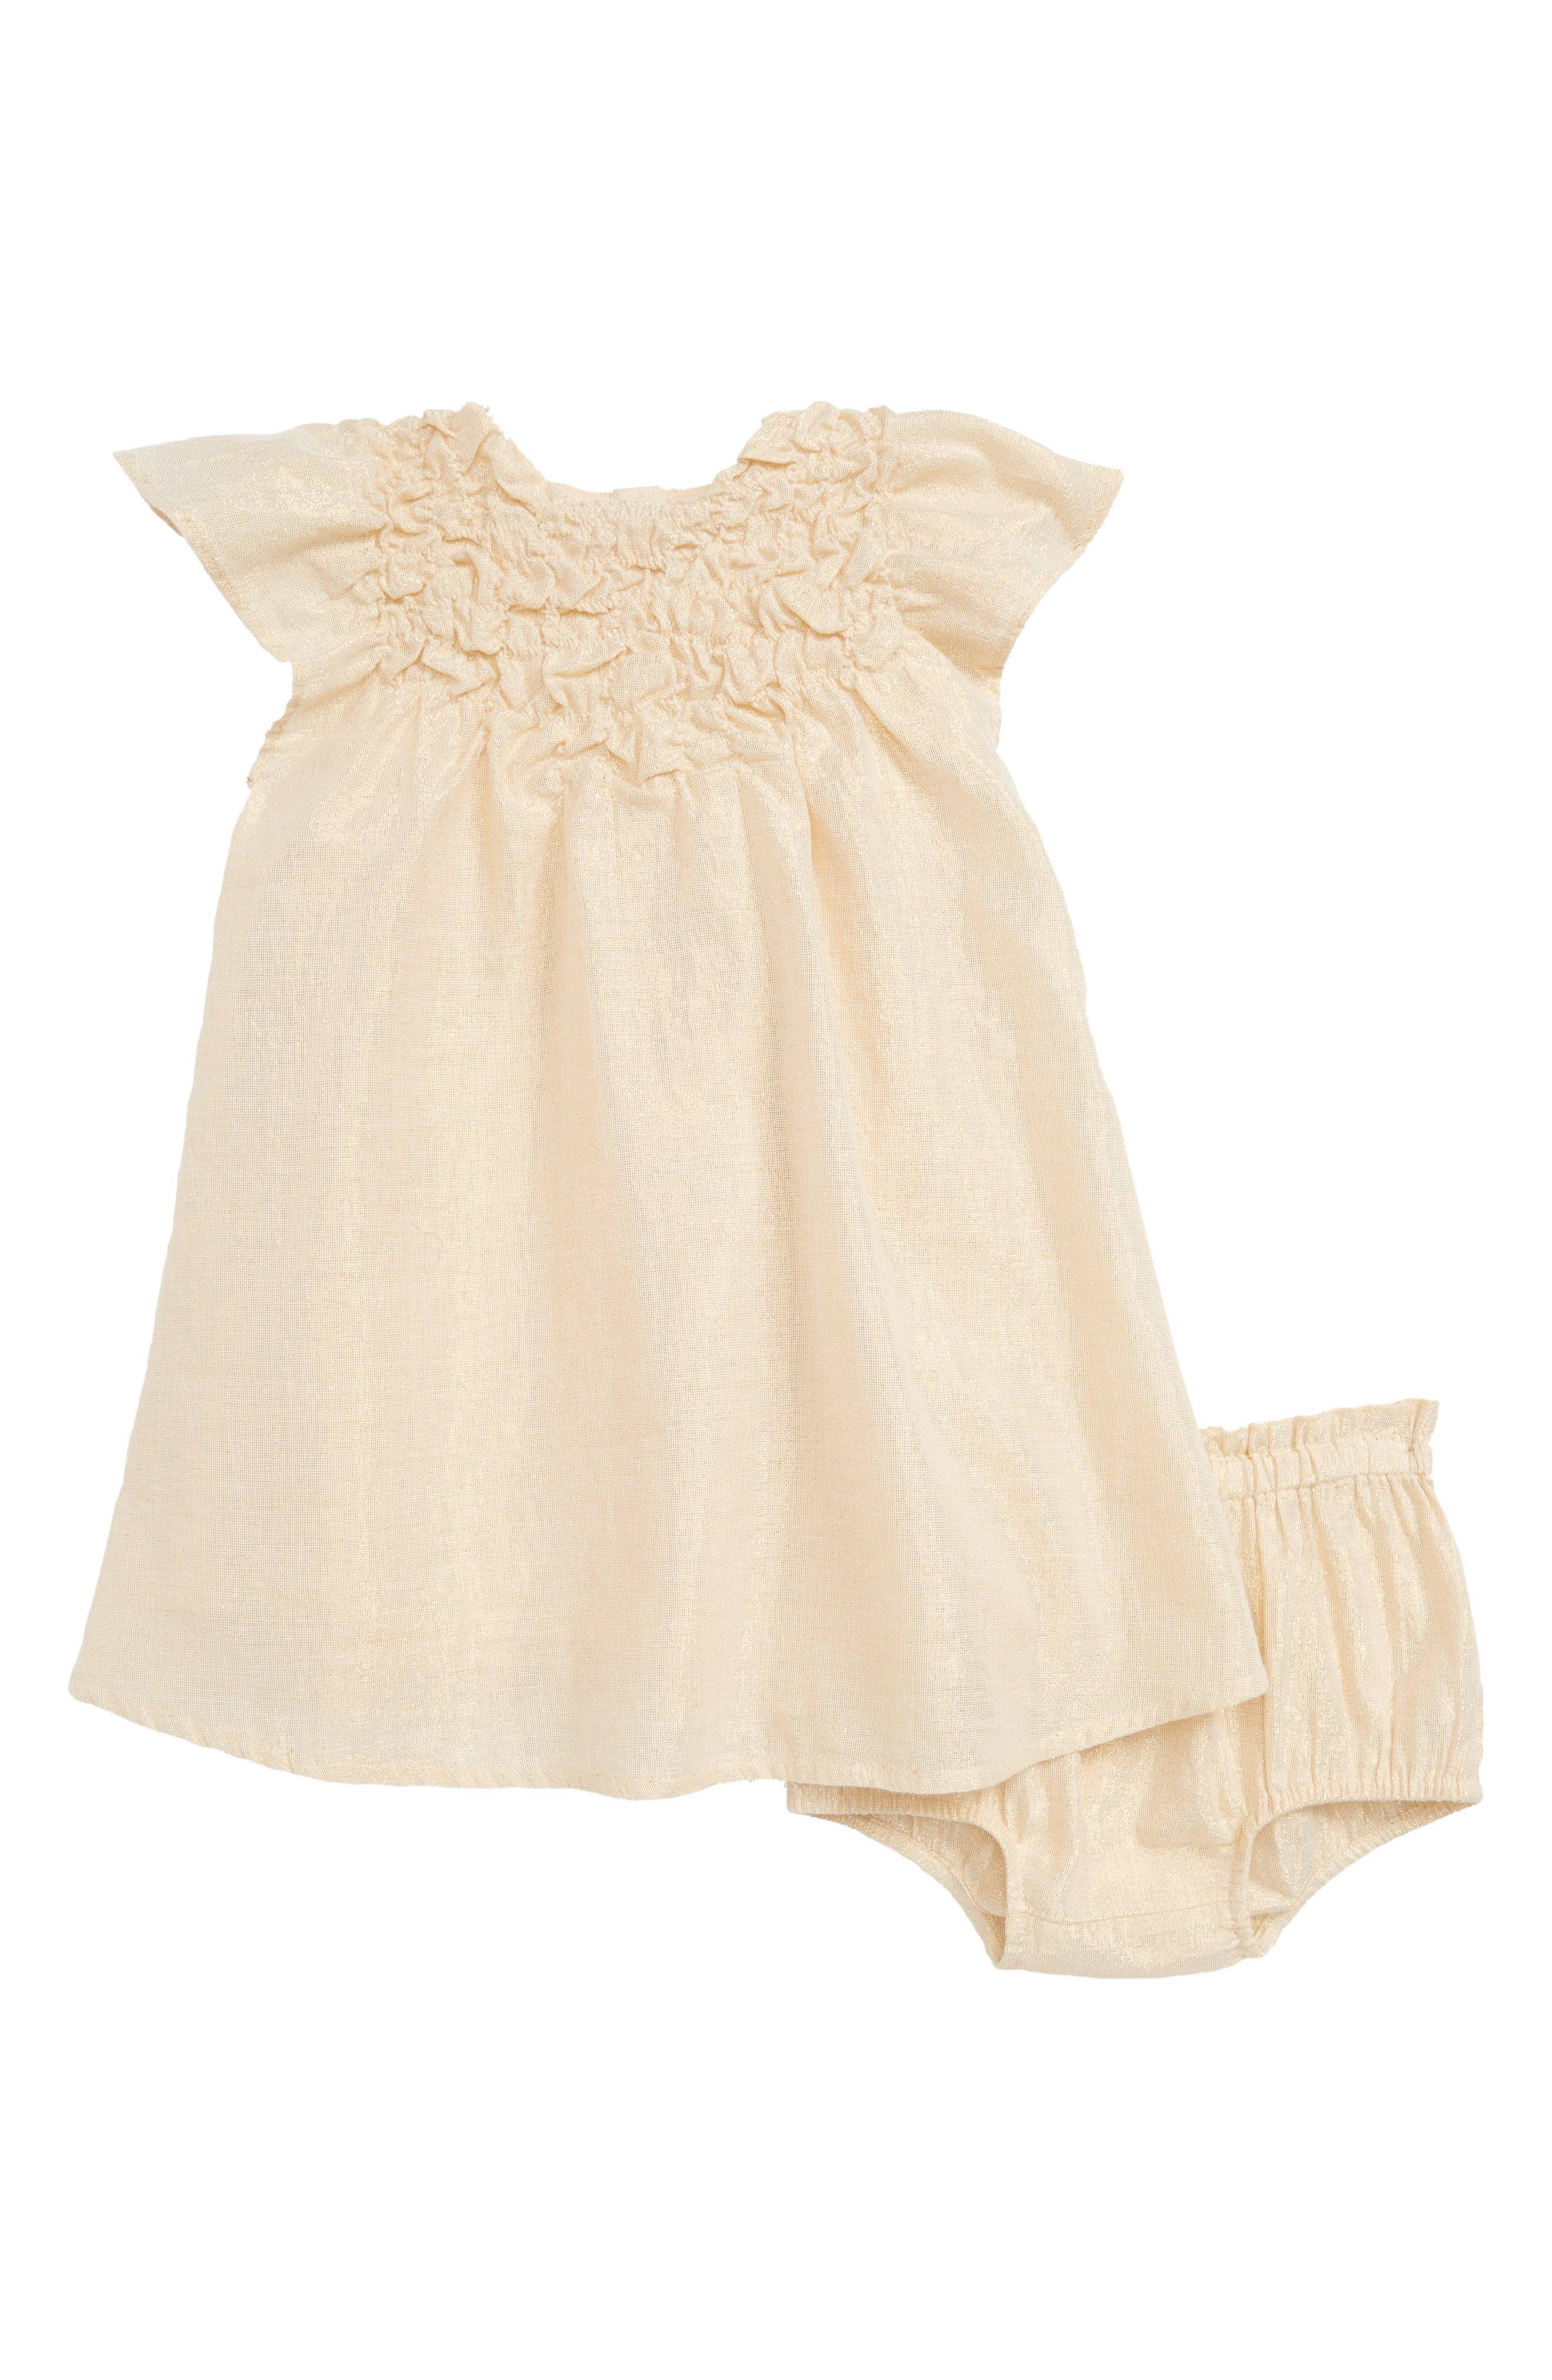 RUBY & BLOOM Rosie Sparkle Dress, Main, color, 710